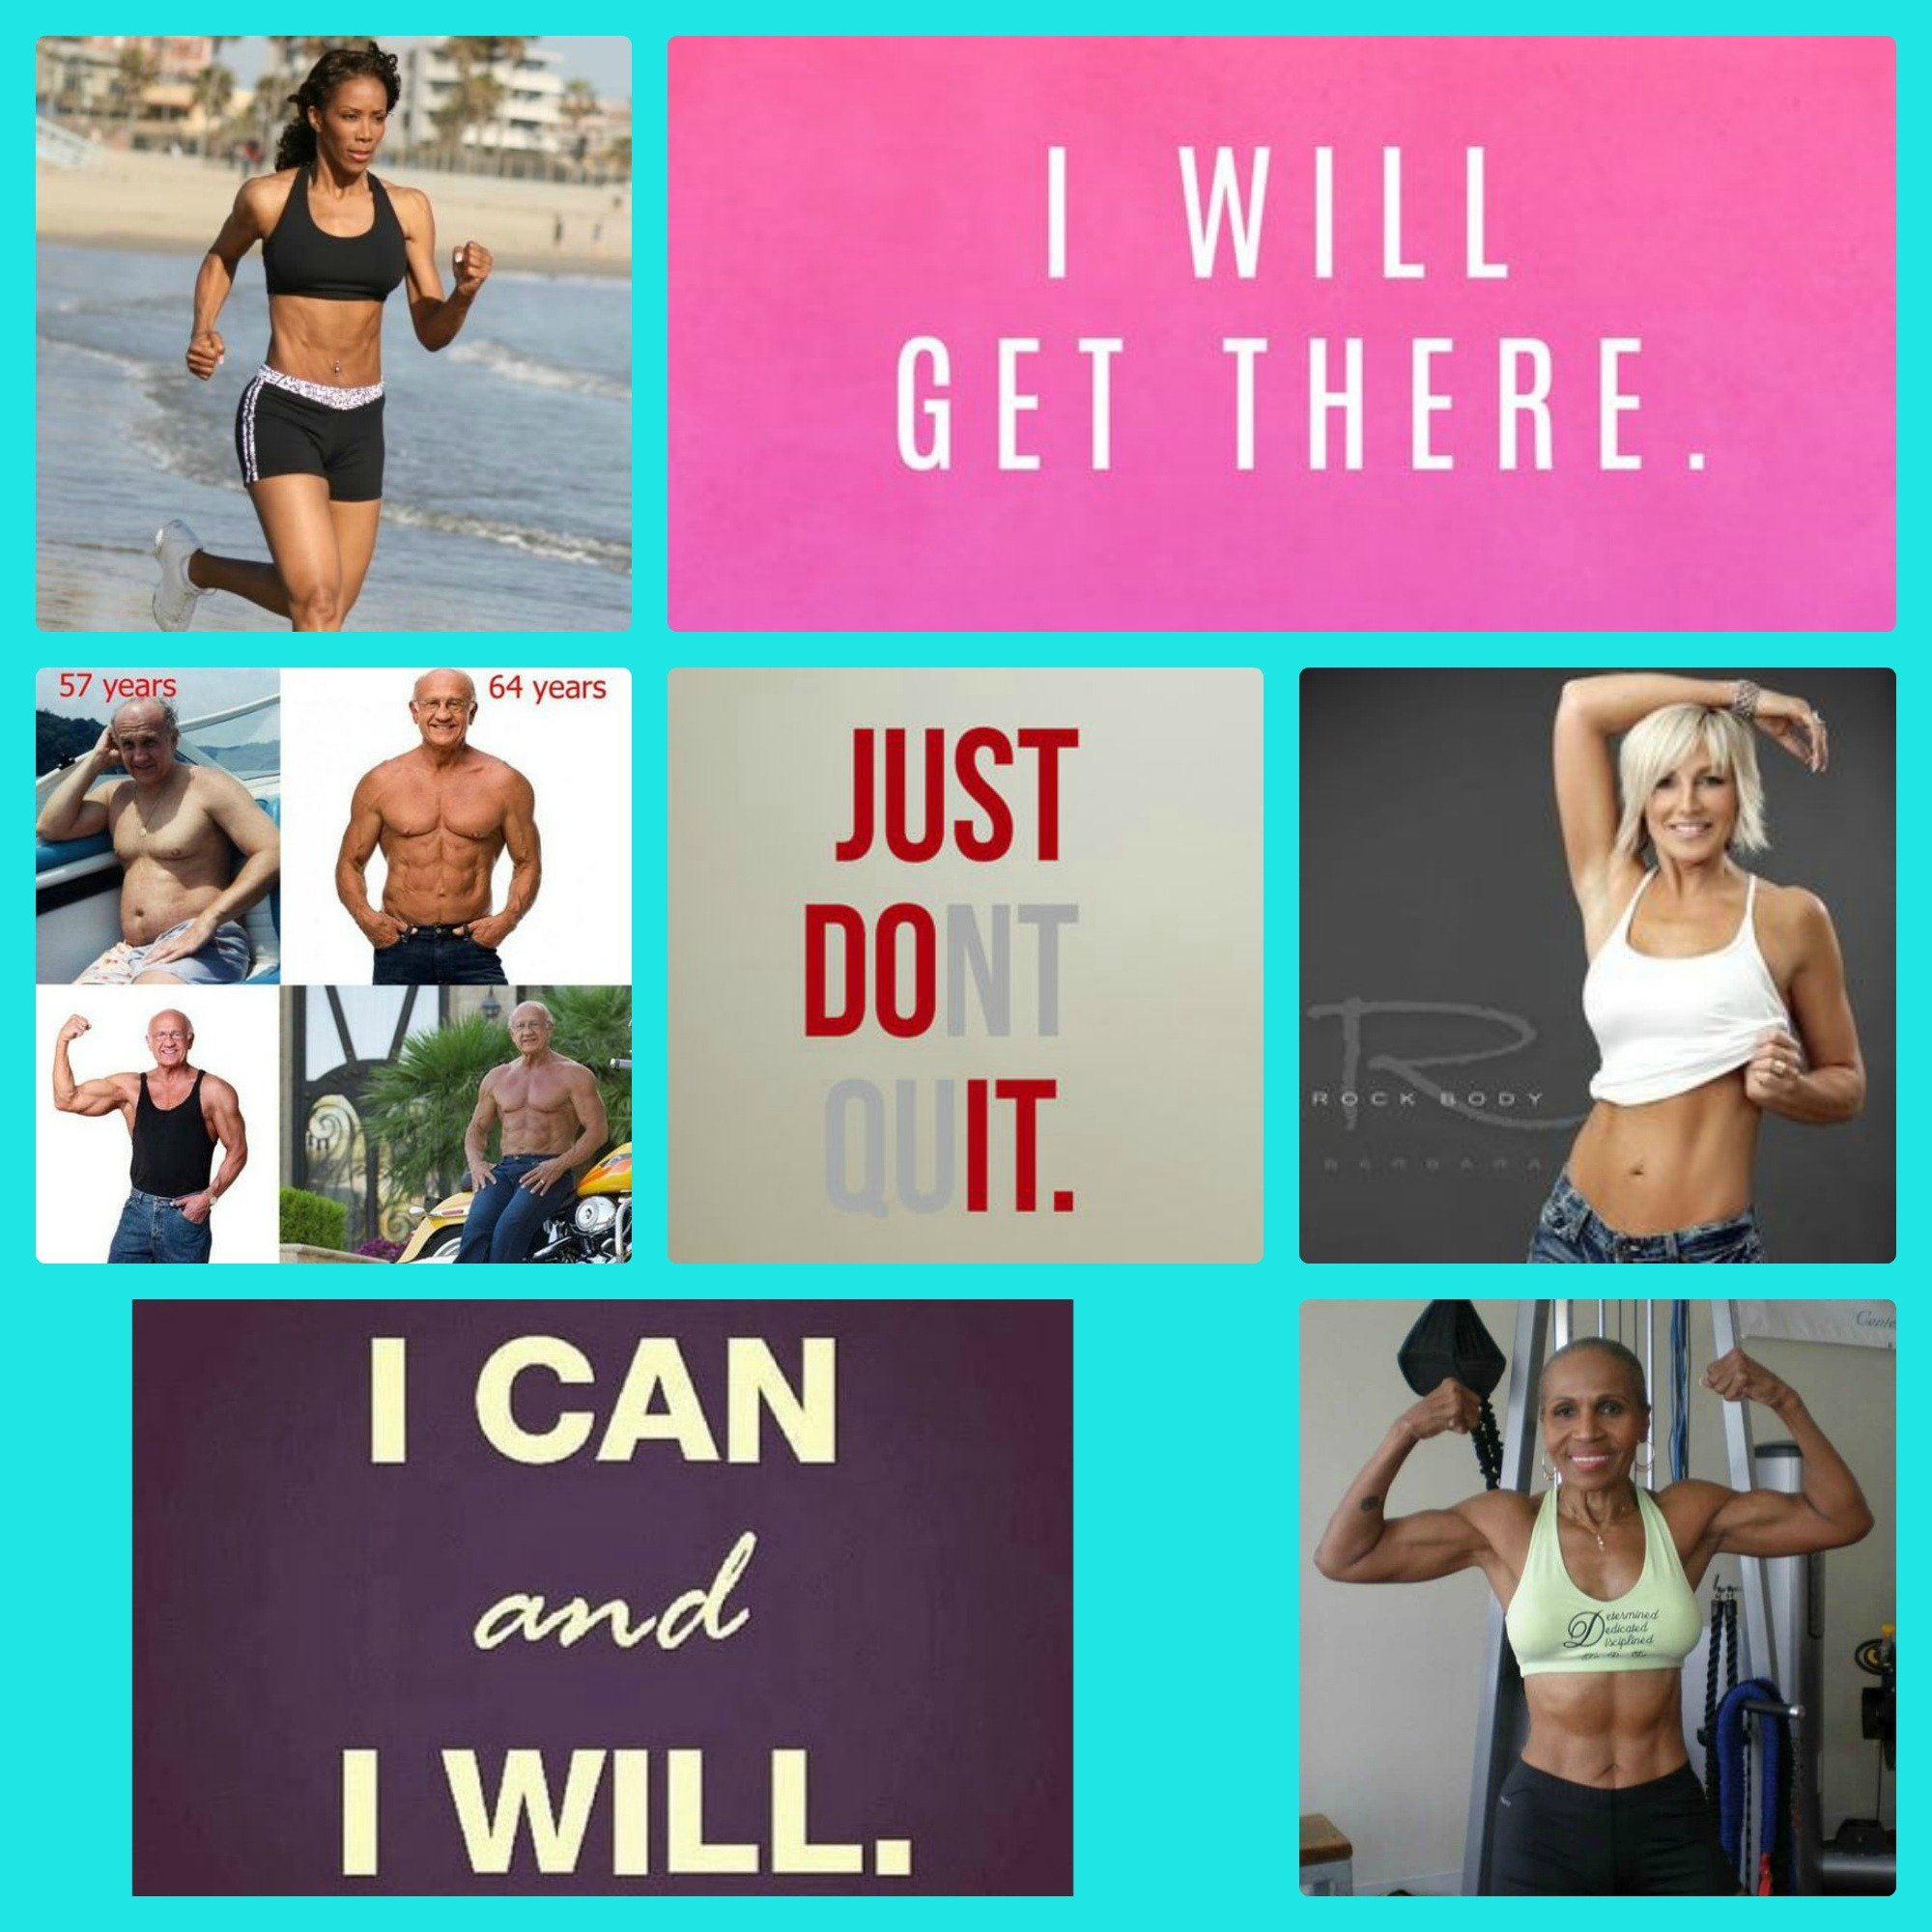 trucs pour garder la motivation, fitness, exercices, inspiration, just do it